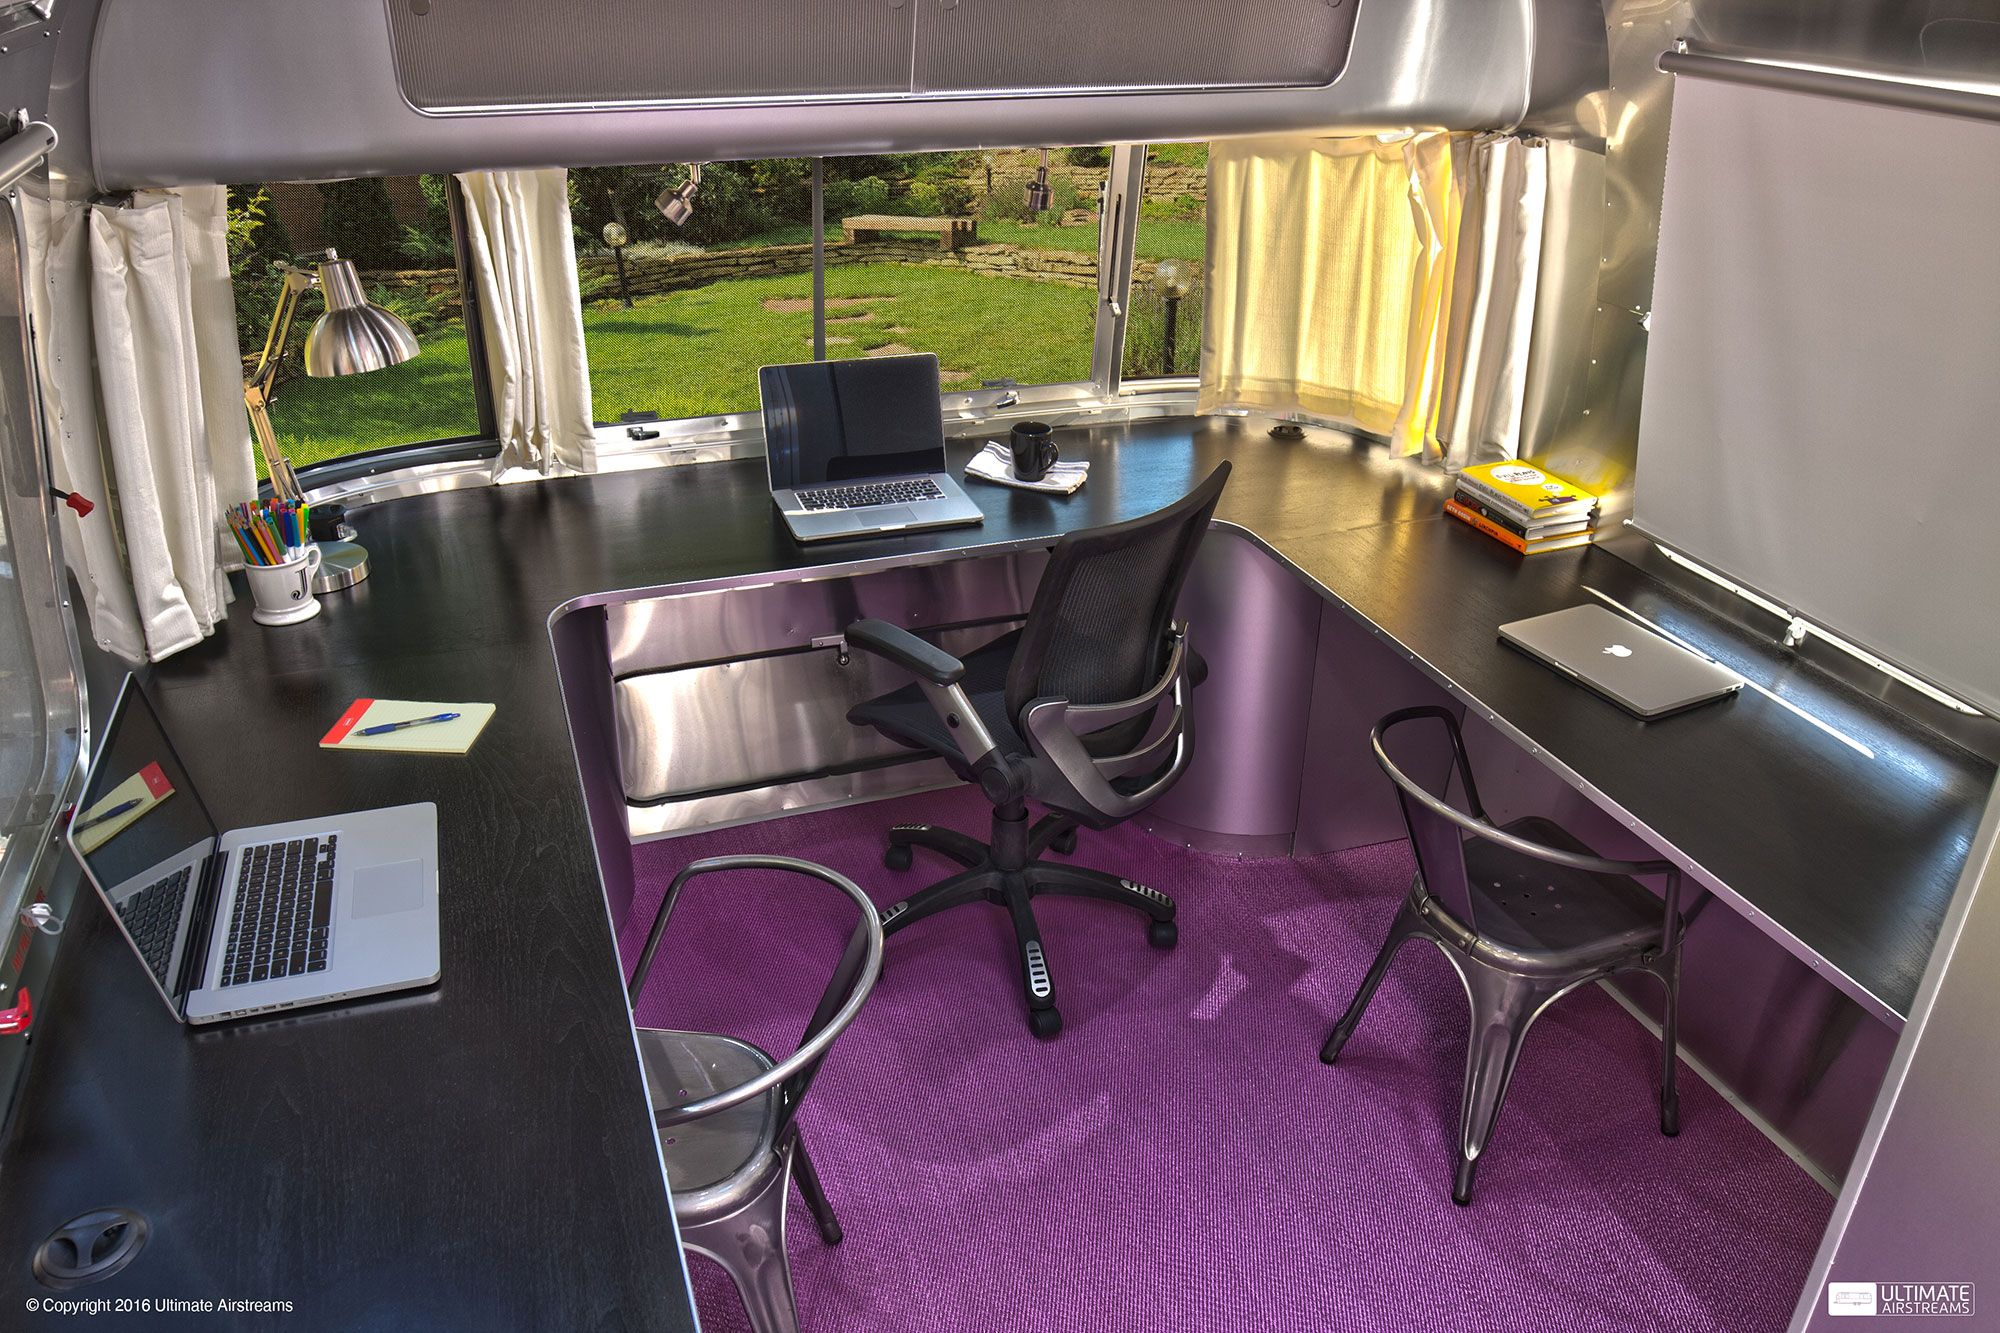 Hybrid mobile office ultimate airstreams airstream interior airstream renovation cargo trailers airstream